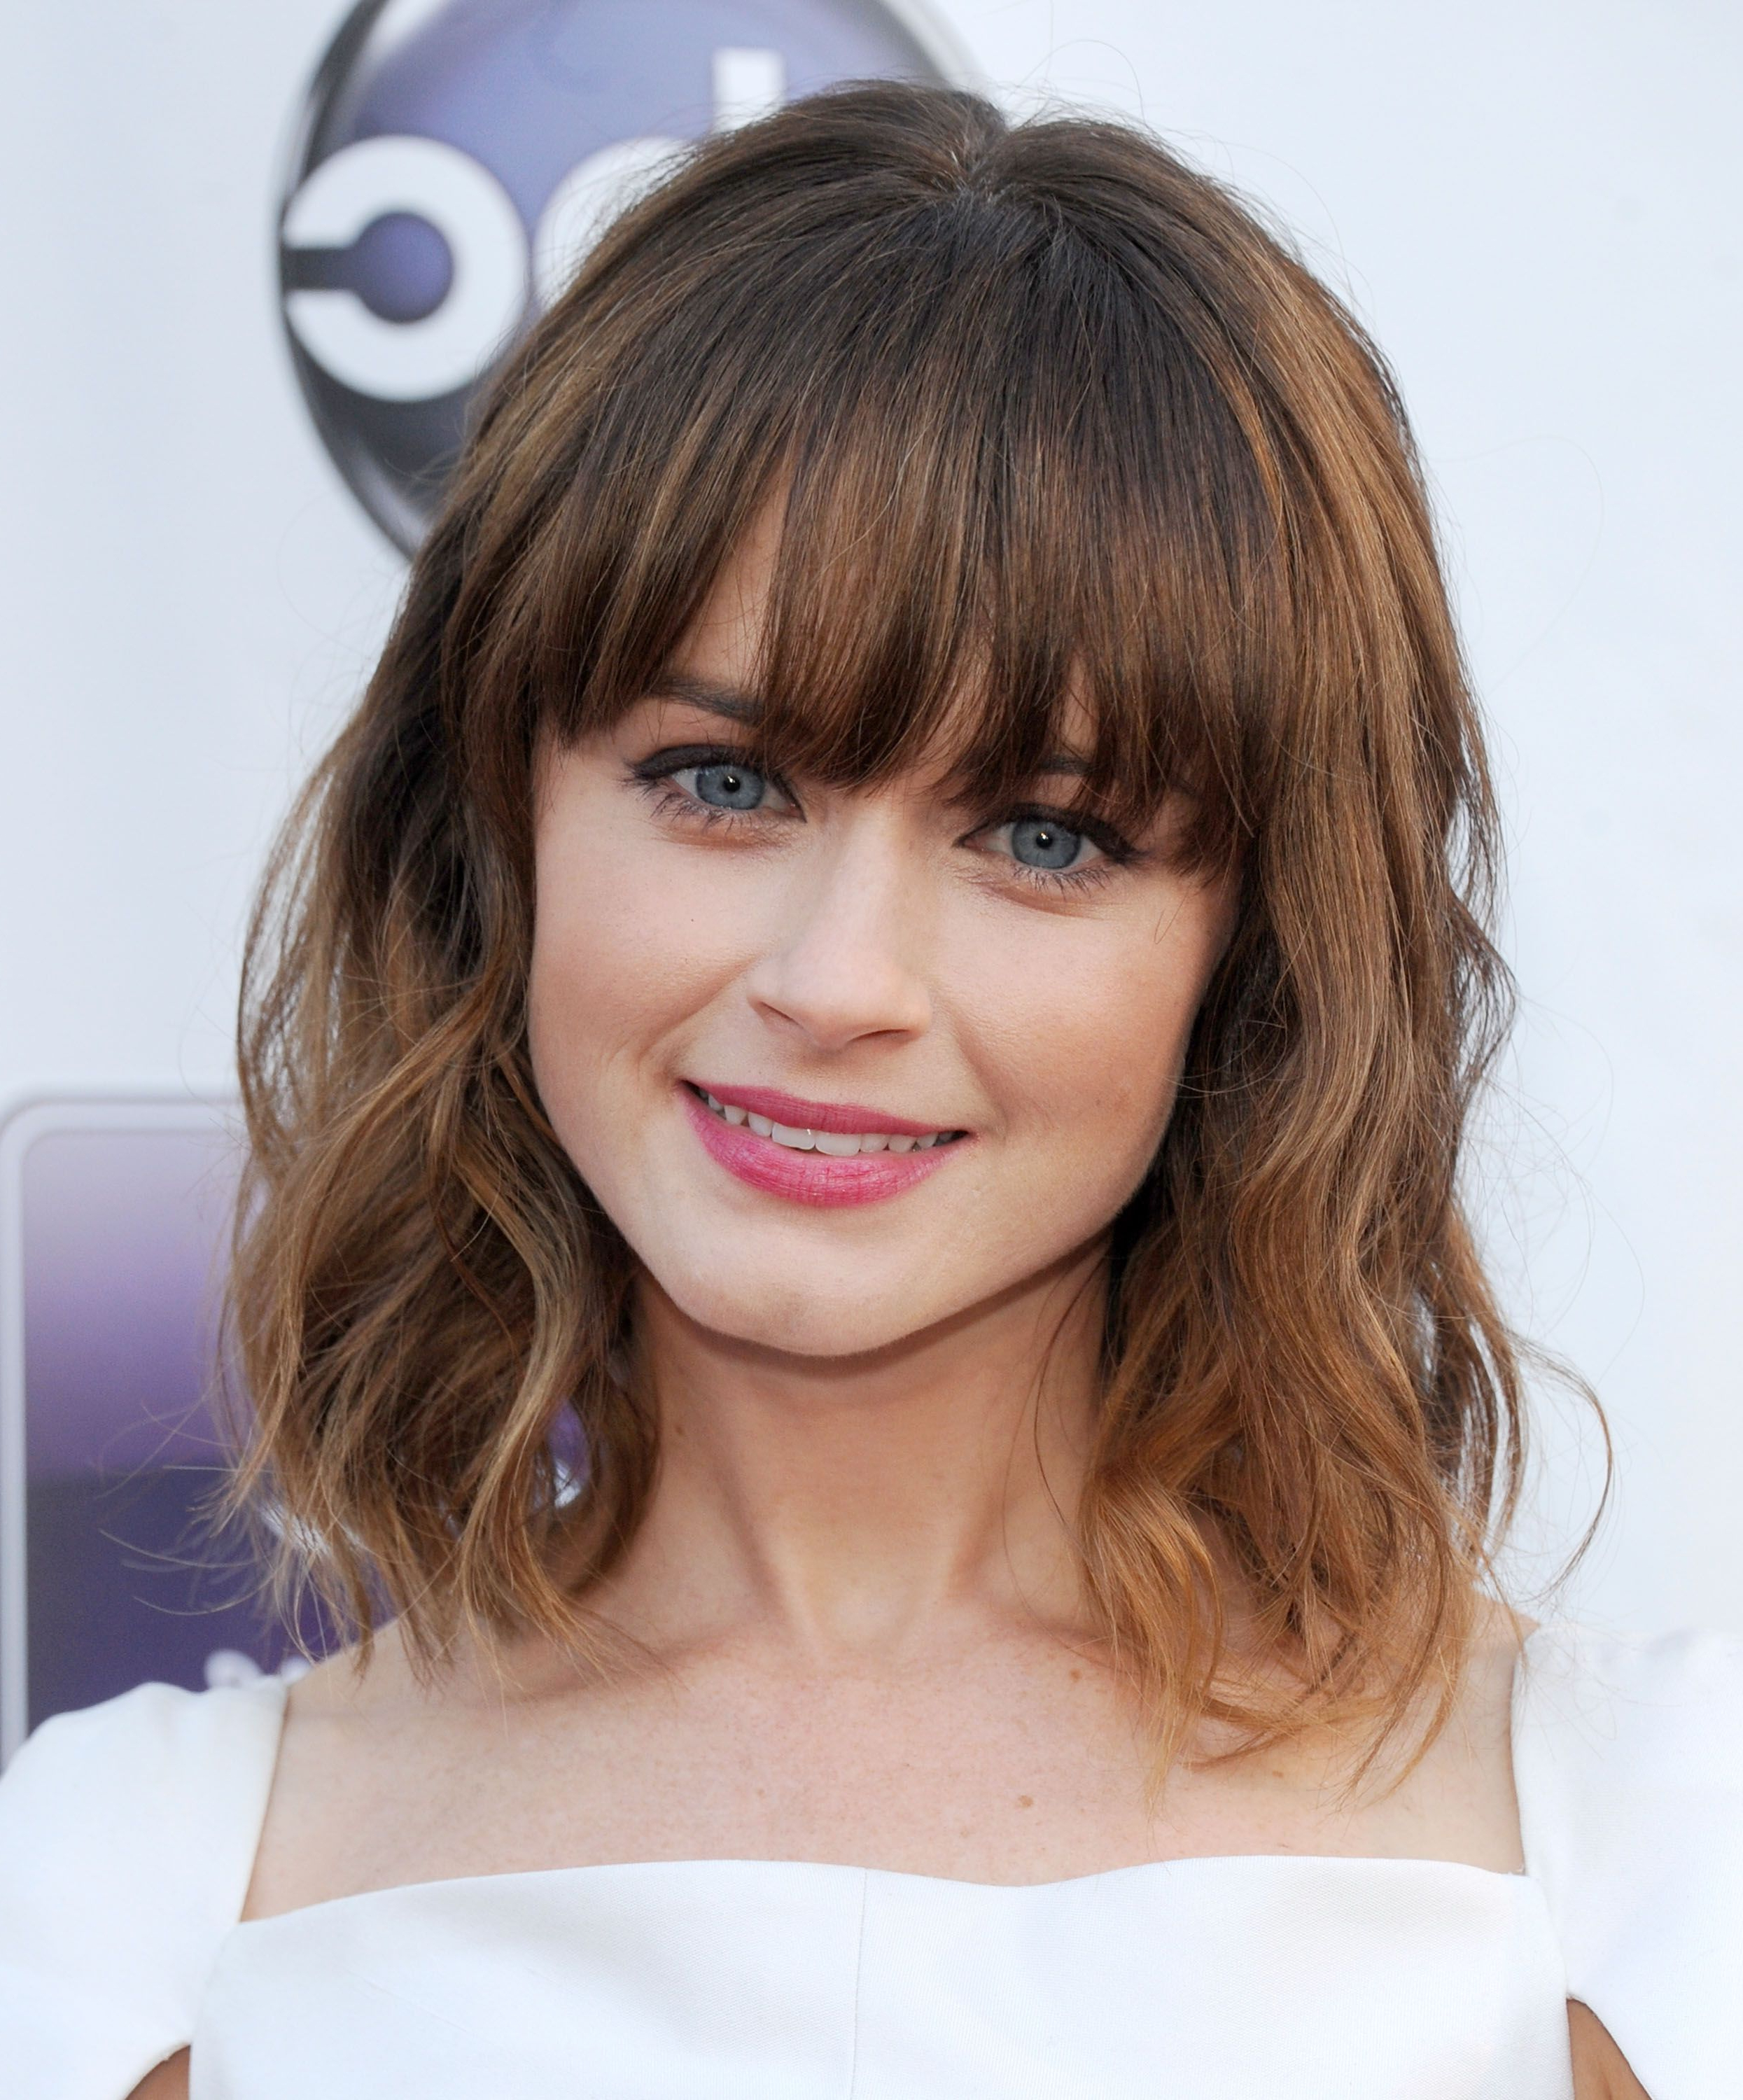 35 Best Hairstyles With Bangs – Photos Of Celebrity Haircuts Throughout Well Known Soft And Casual Curls Hairstyles With Front Fringes (View 2 of 20)